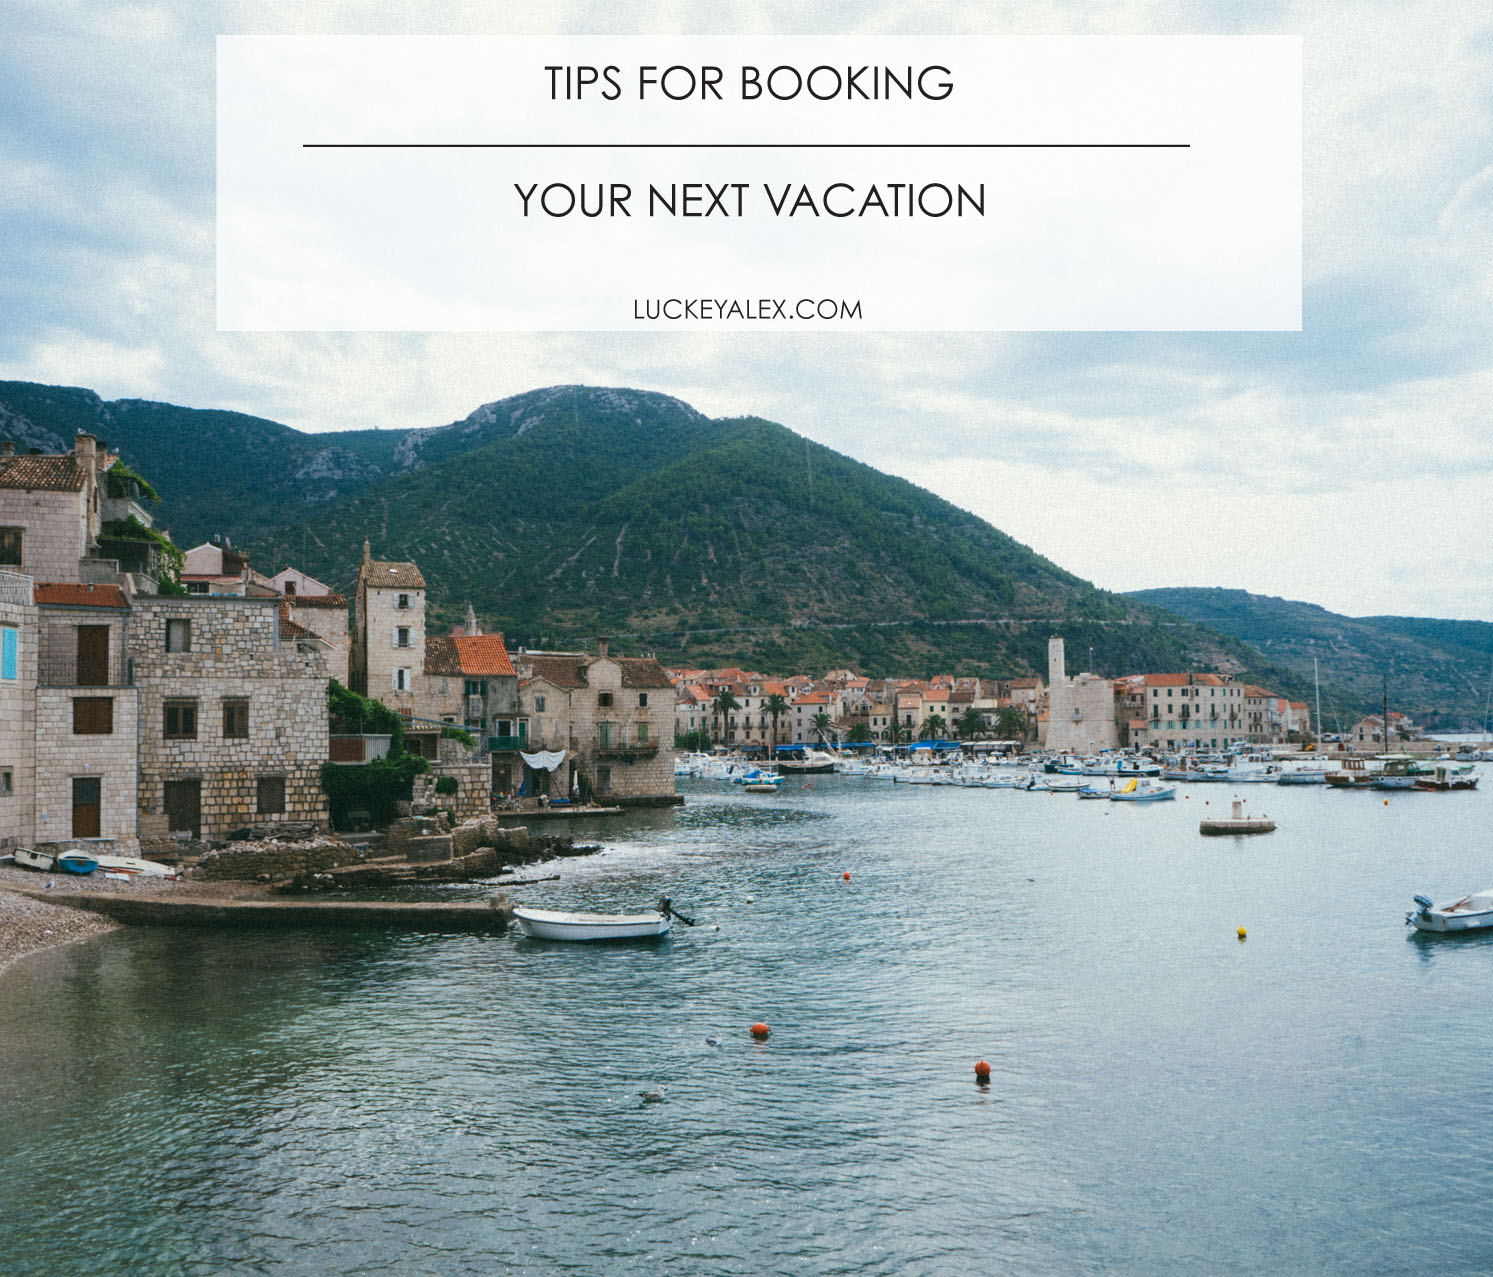 Tips for Booking your next vacation